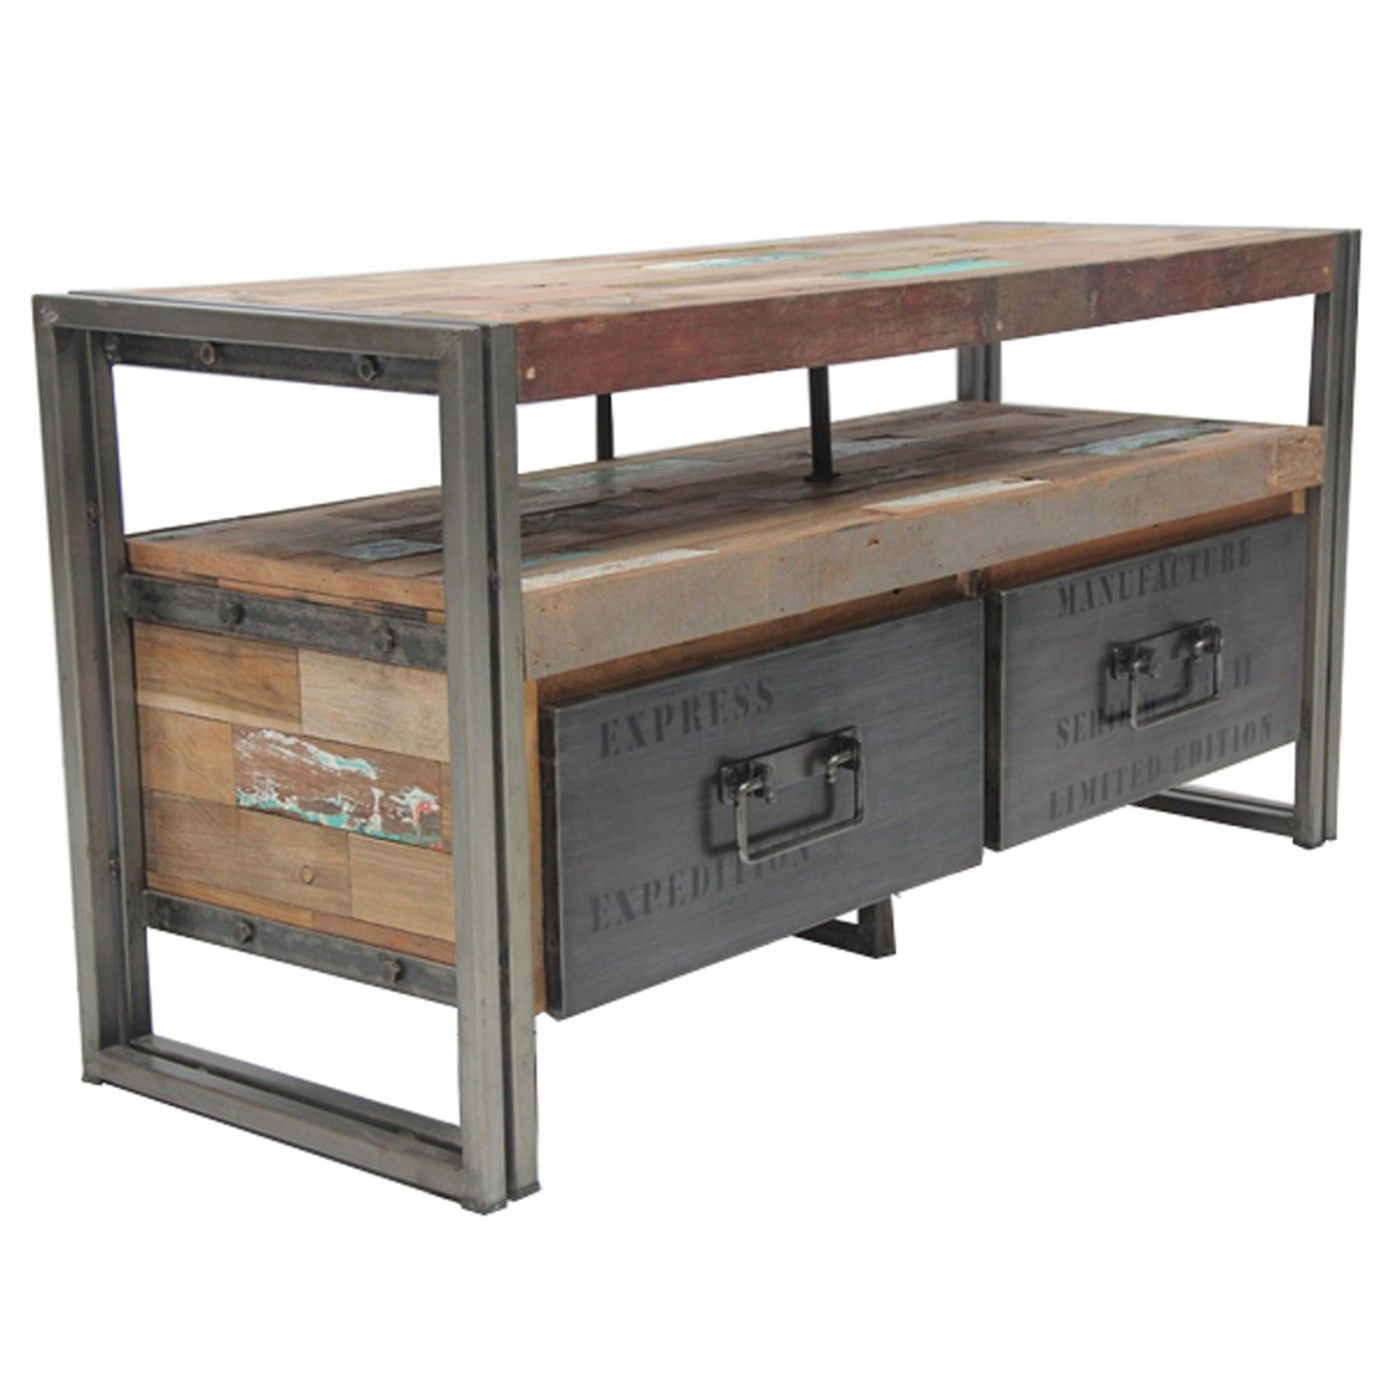 Furniture For Lofts loft tv unit with 2 drawers | industrial style, industrial and cycling